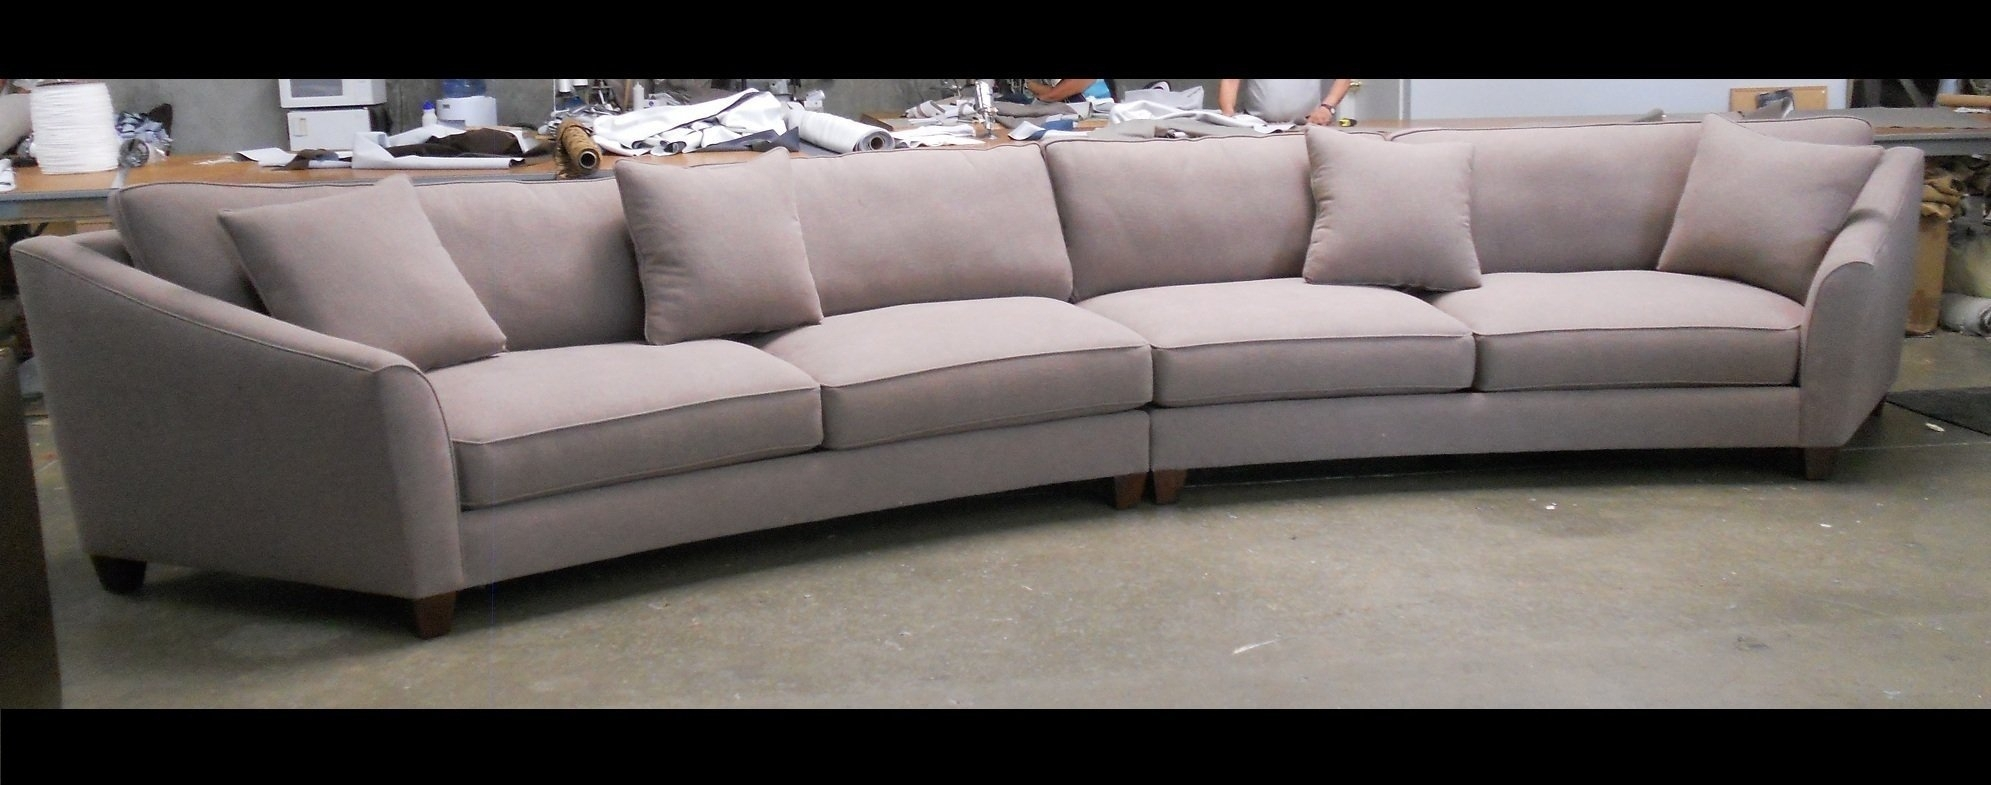 Furniture : 7 Ft Sectional Sofa Sectional Sofa 110 X 110 Quality Within 110X110 Sectional Sofas (Image 3 of 10)